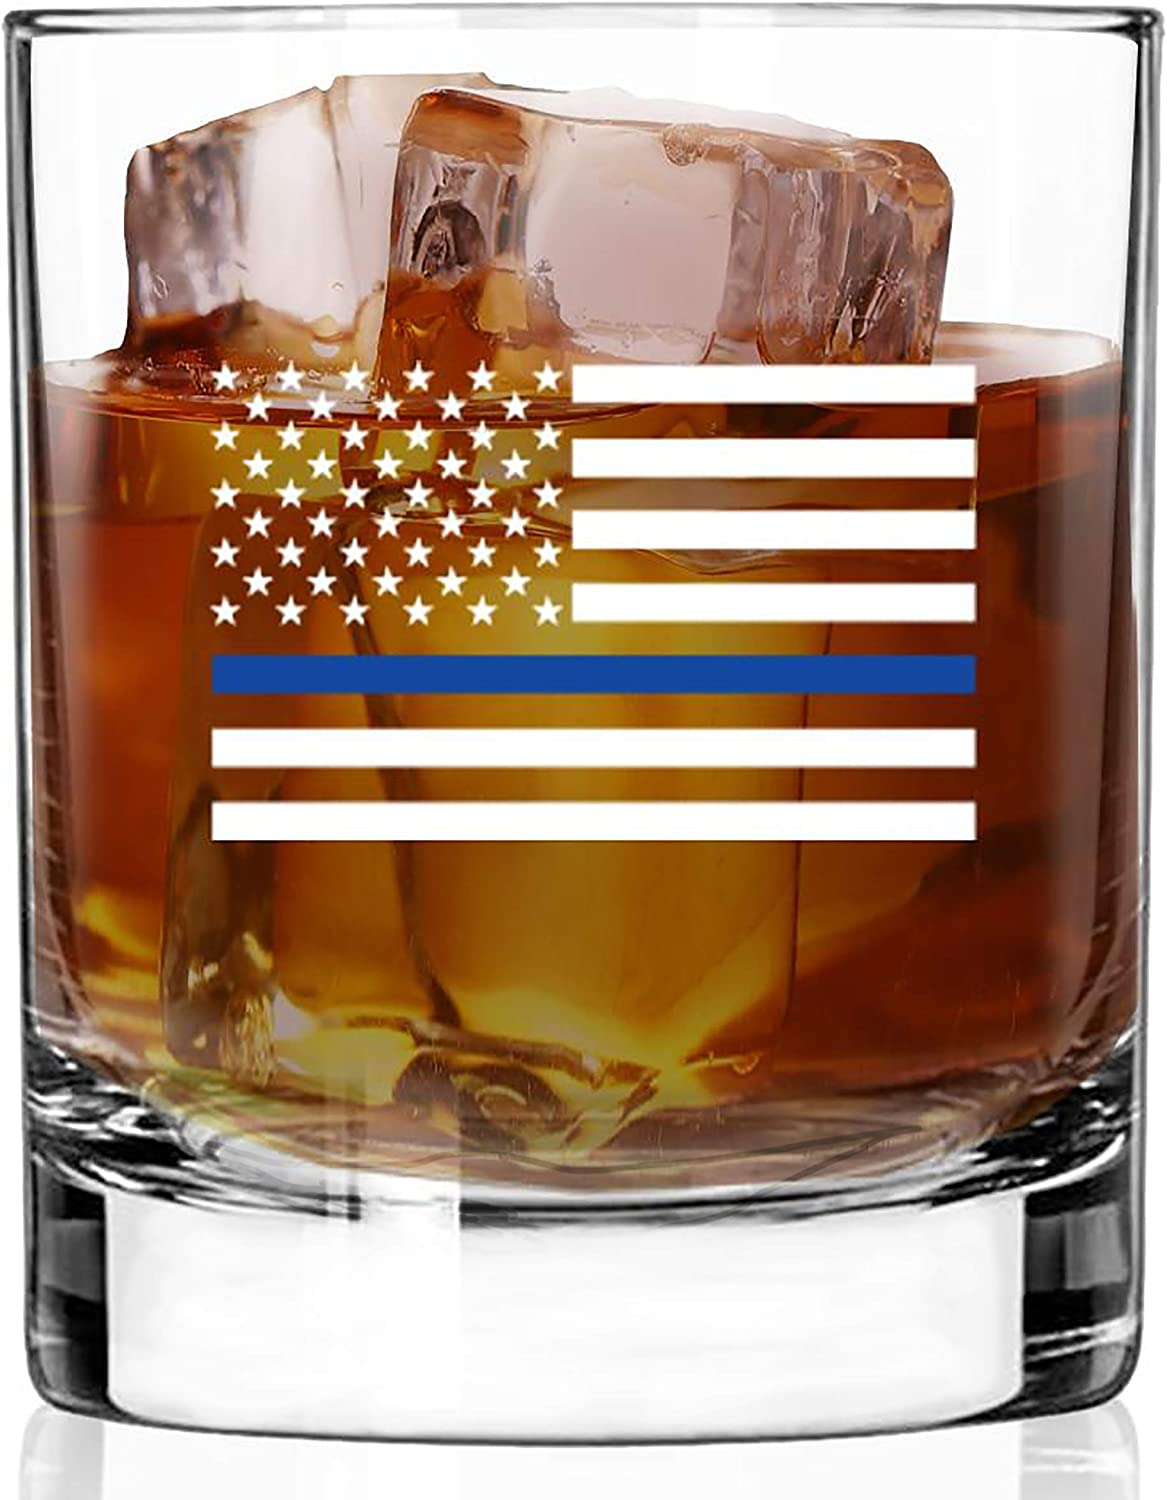 BACK THE BLUE Challenge the lowest price WHISKEY GLASS Ba Weighted Commercial Spasm price Grade Heavy